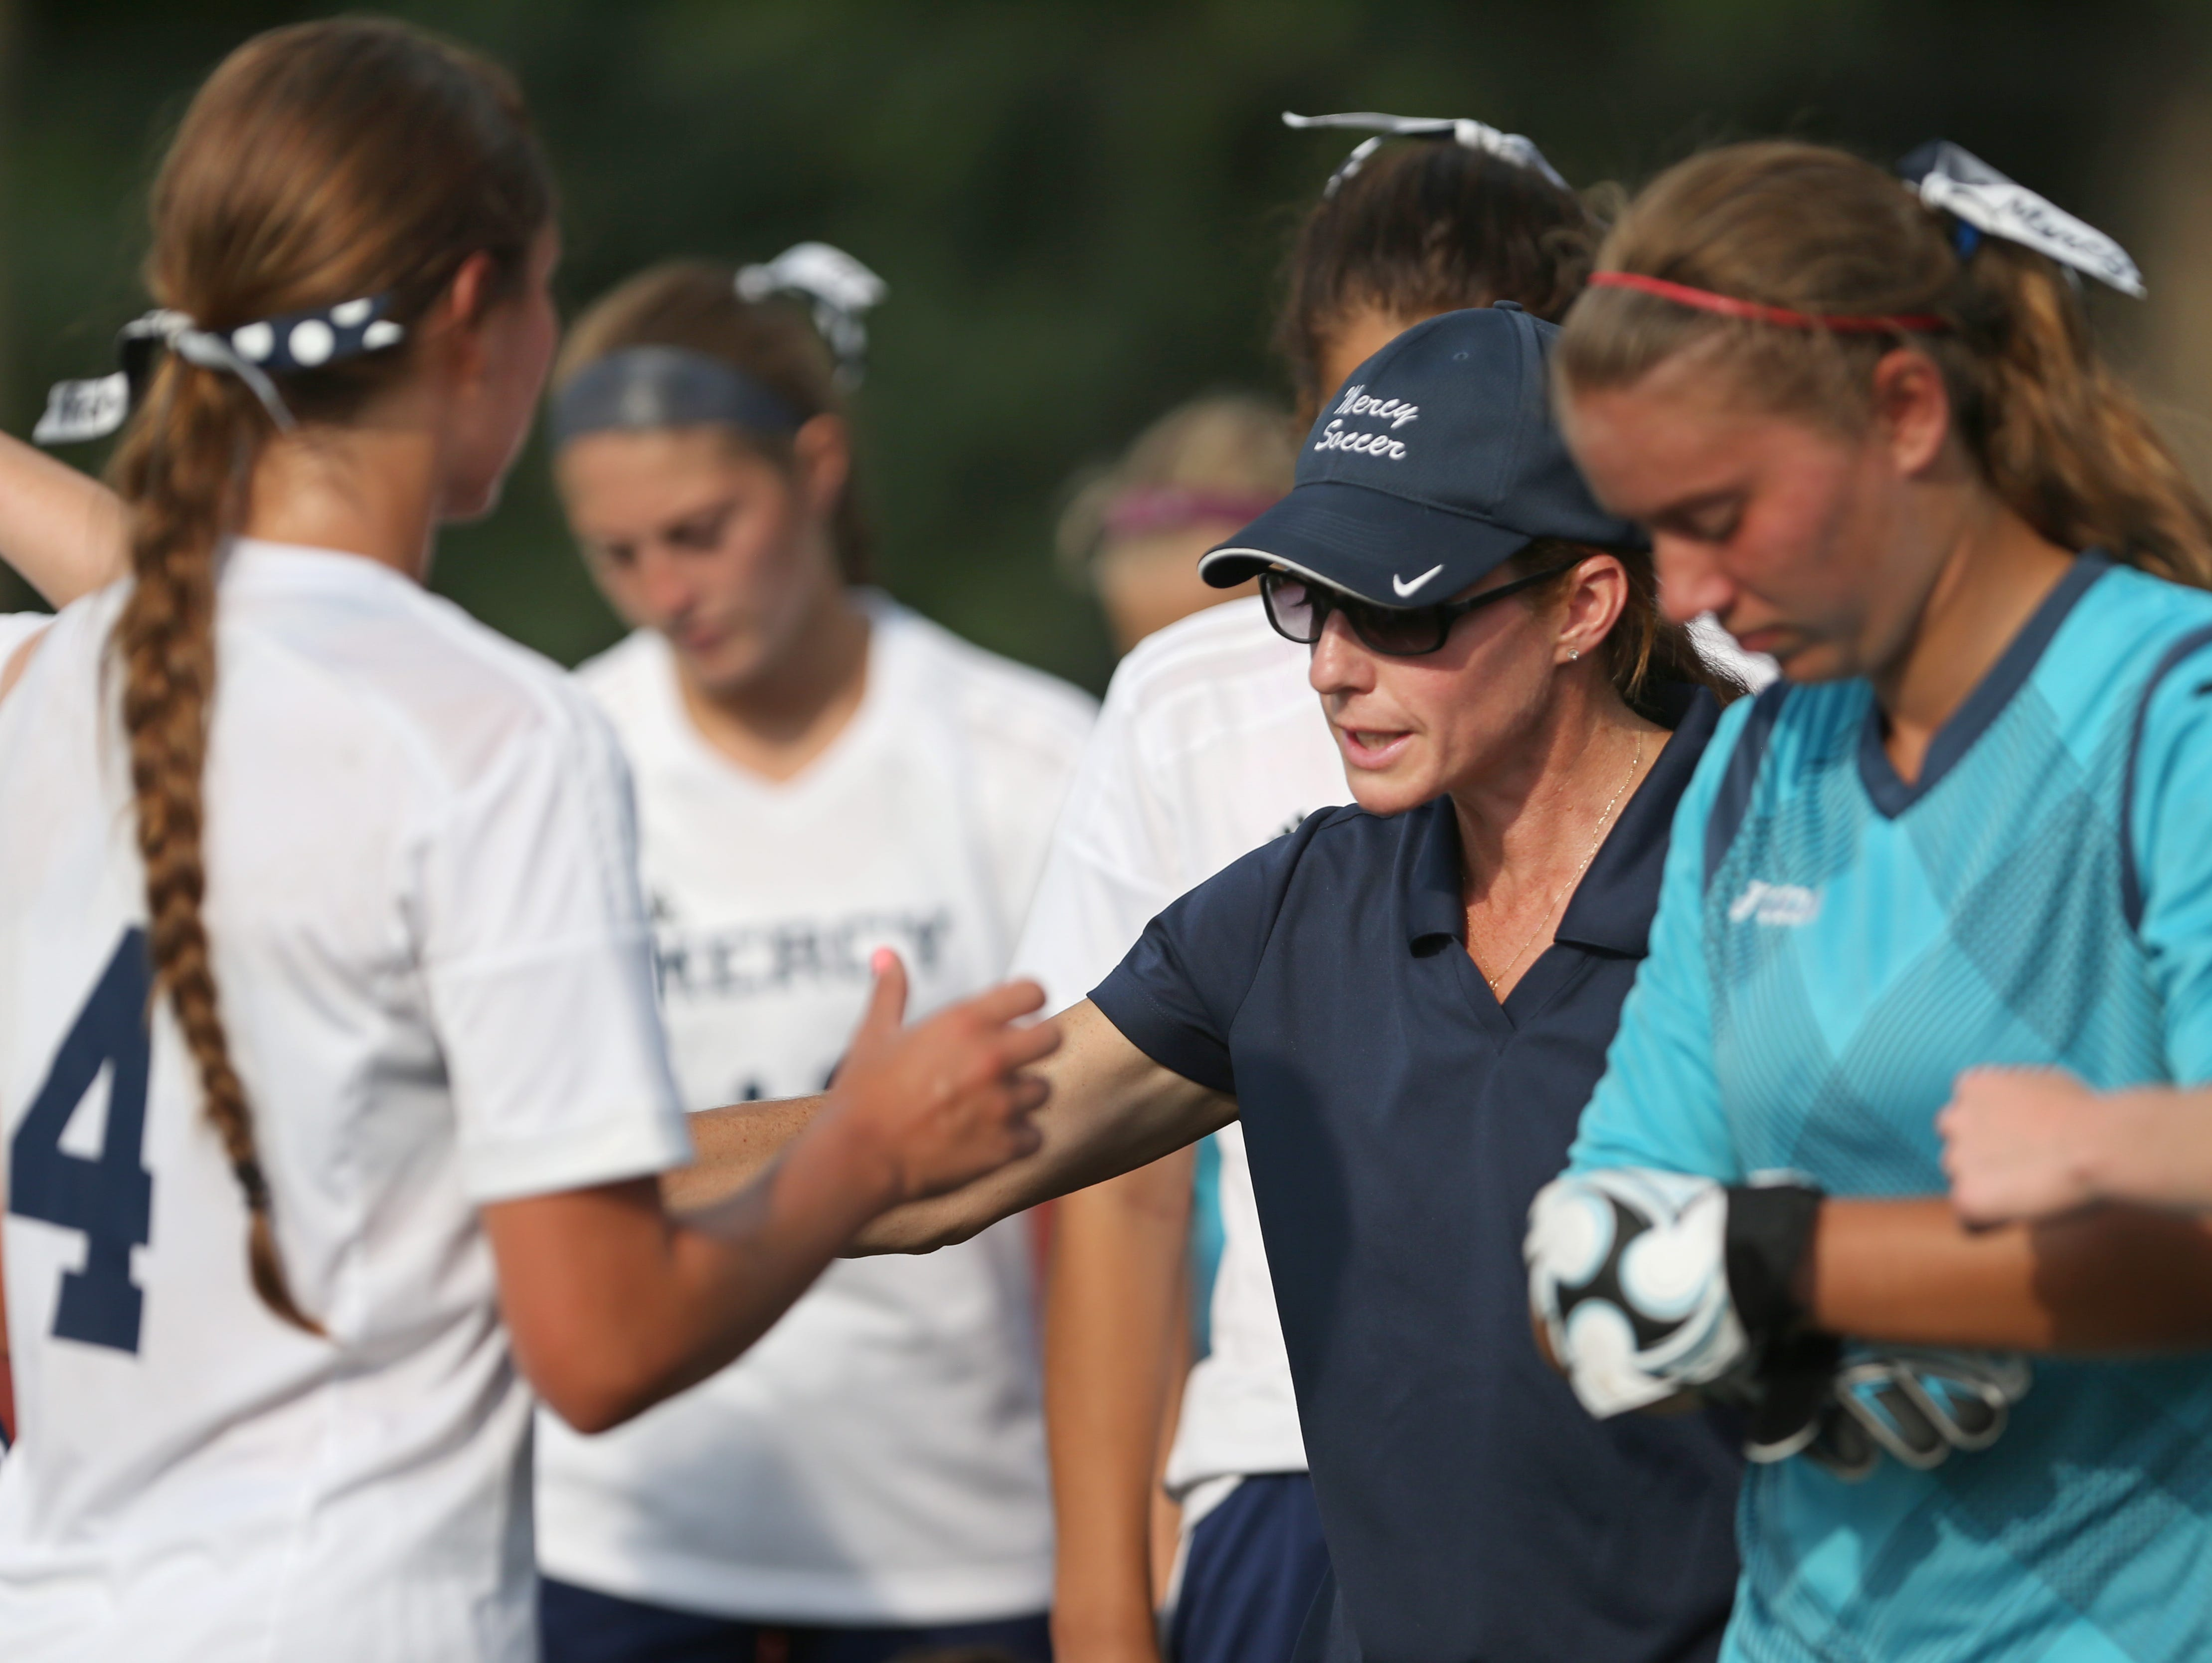 Donna Trost, head coach of Mercy varsity girls soccer, circles up her team for one last pep talk before they take the field during Mercy's matchup against Aquinas at Mercy High Tuesday, Sept. 8, 2015 in Brighton. Trost is the latest winner of the Democrat & Chronicle Coaches Who Care award.